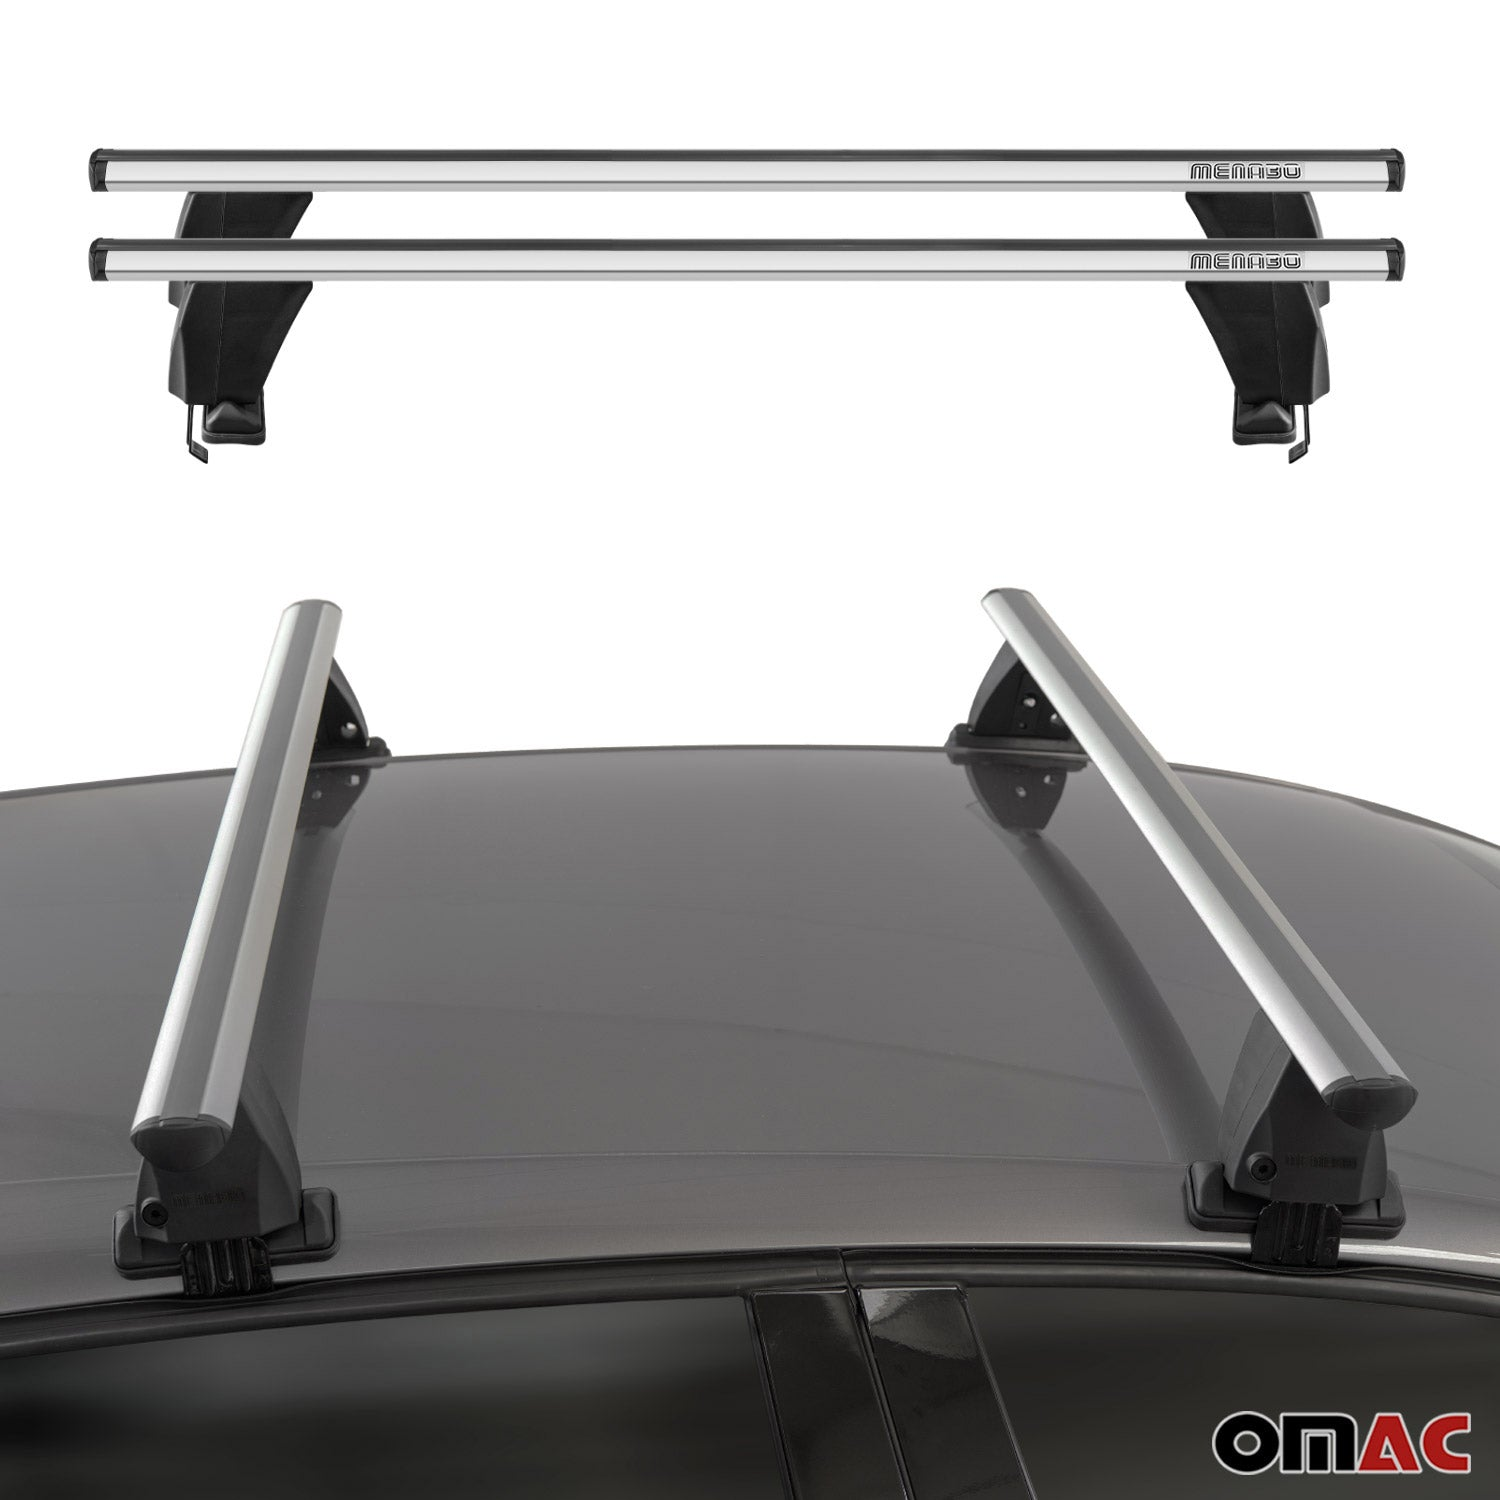 Smooth Top Roof Rack Cross Bar Luggage Carrier For VW Jetta A5 Sedan 2005-2010